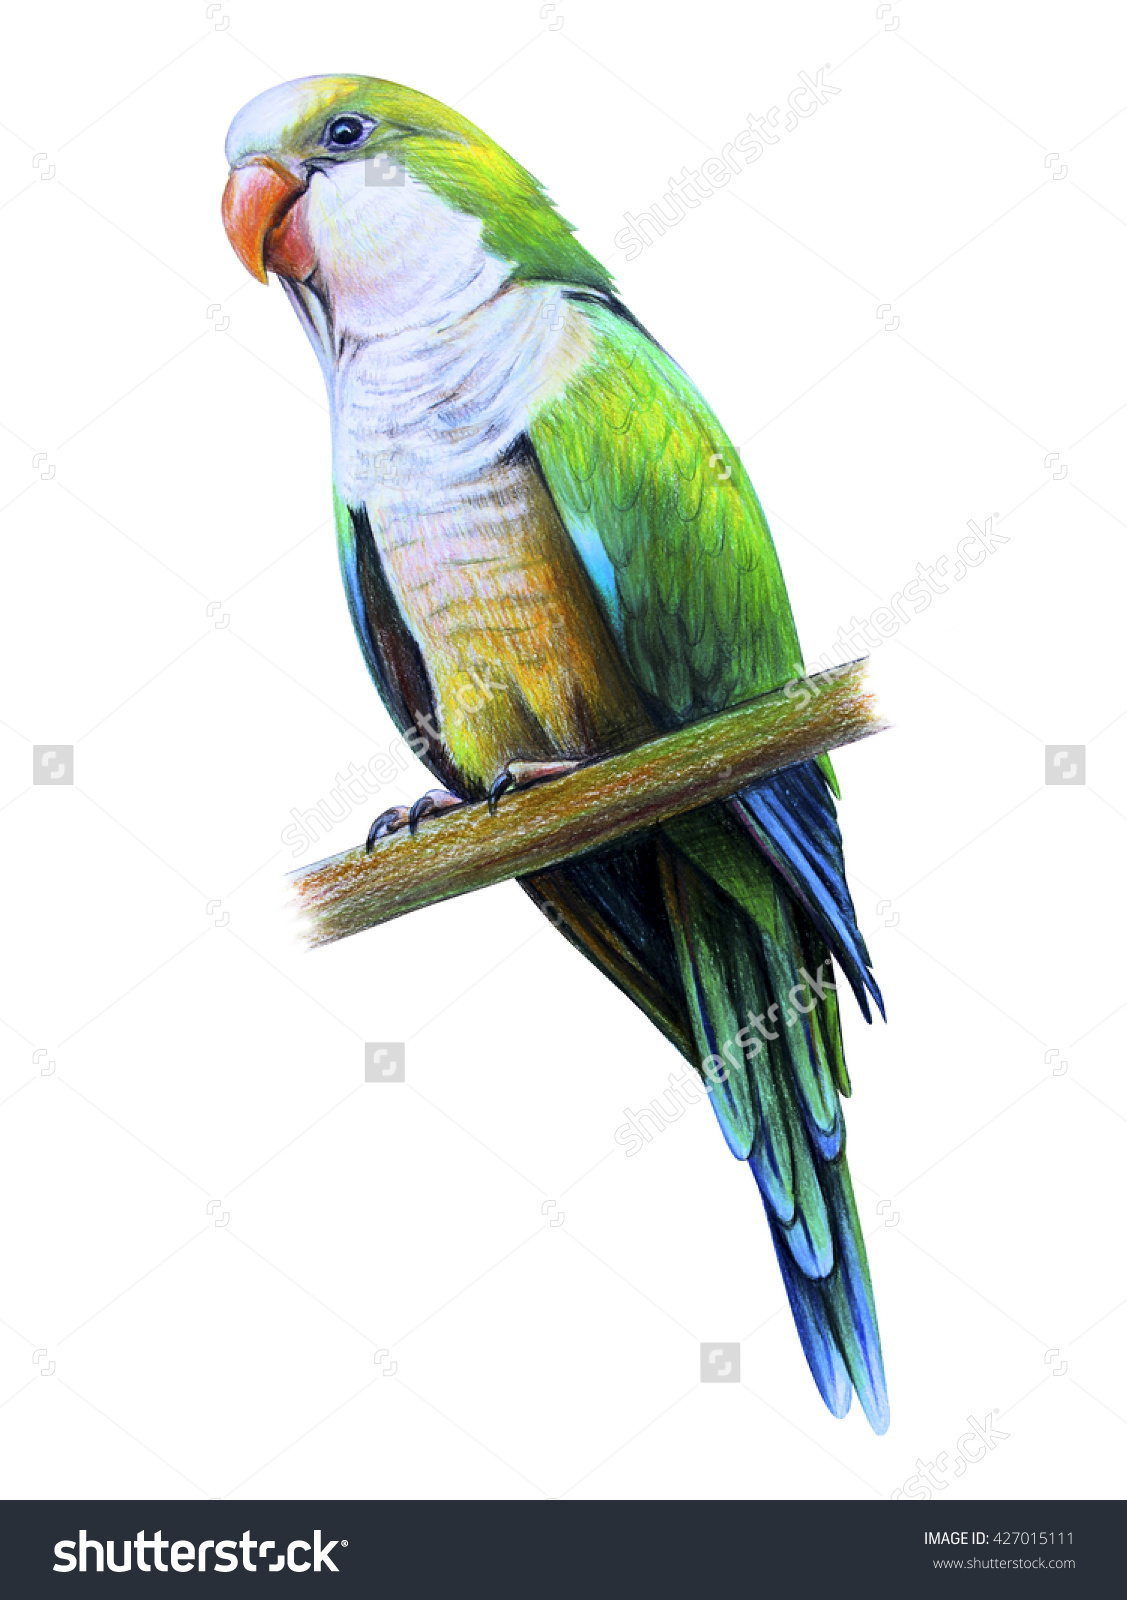 Amazonian Parrot Drawing Monk Parakeet Stock Illustration.